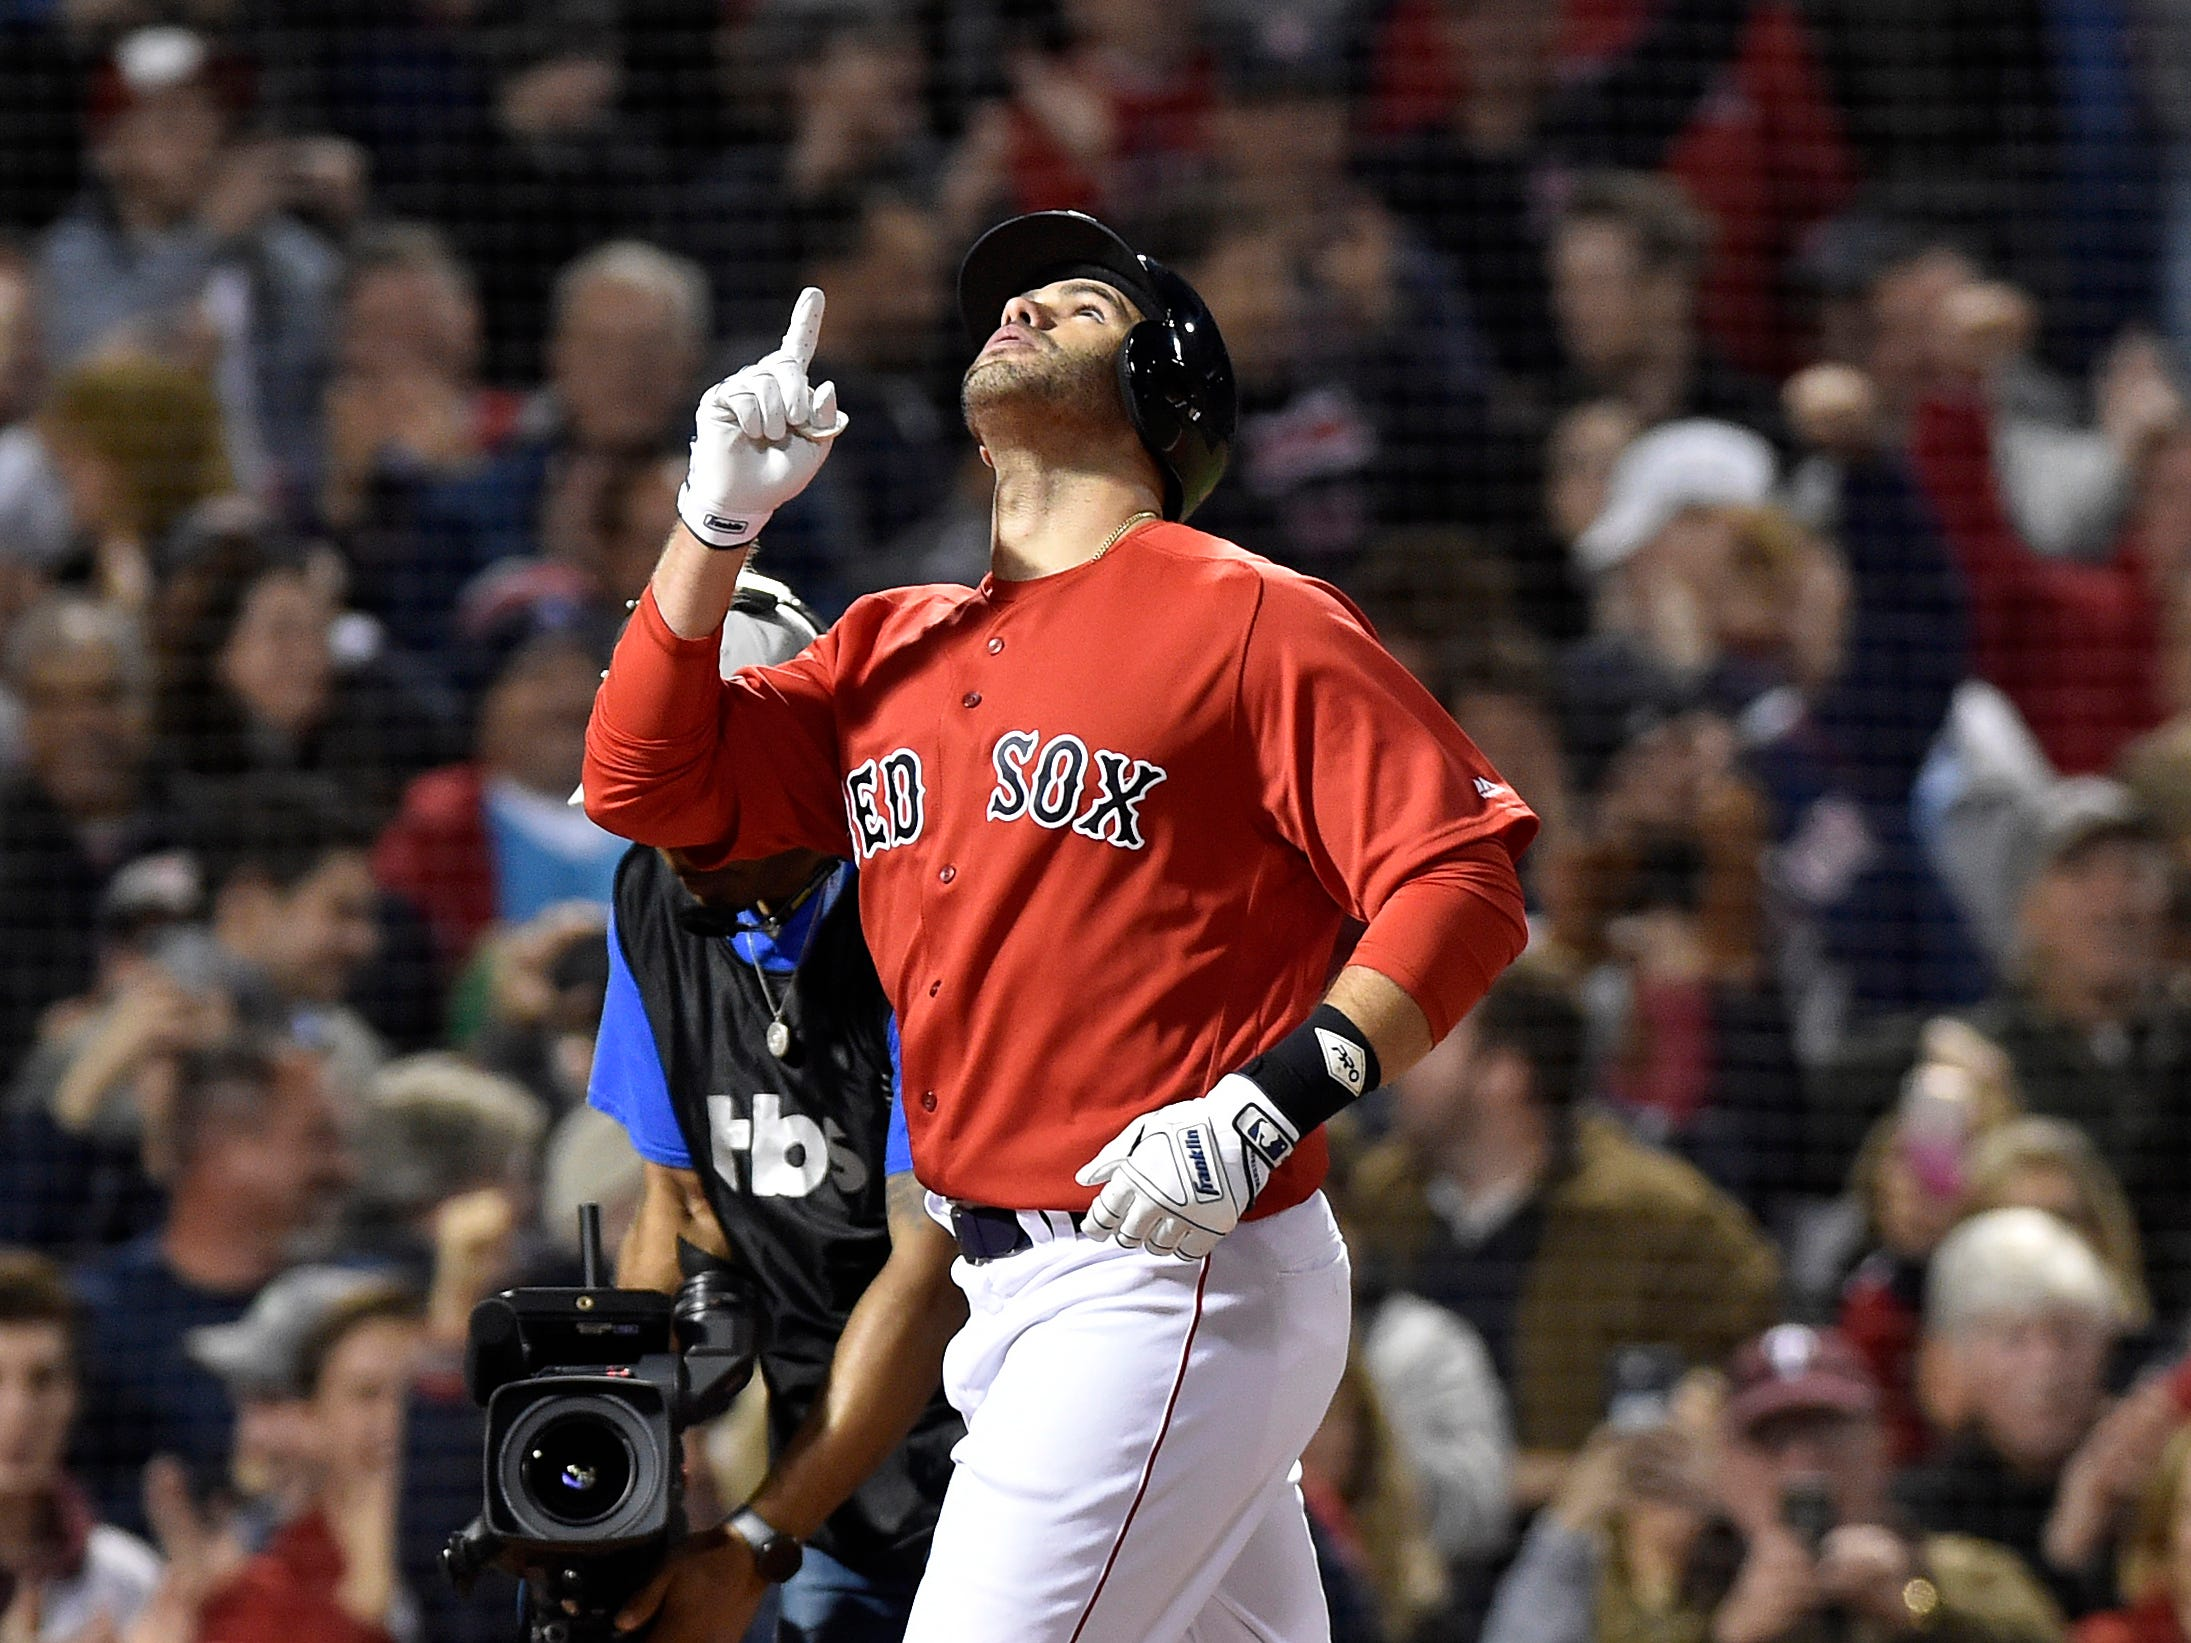 ALDS Game 1: Red Sox designated hitter J.D. Martinez slugs a three-run home run in the first inning.